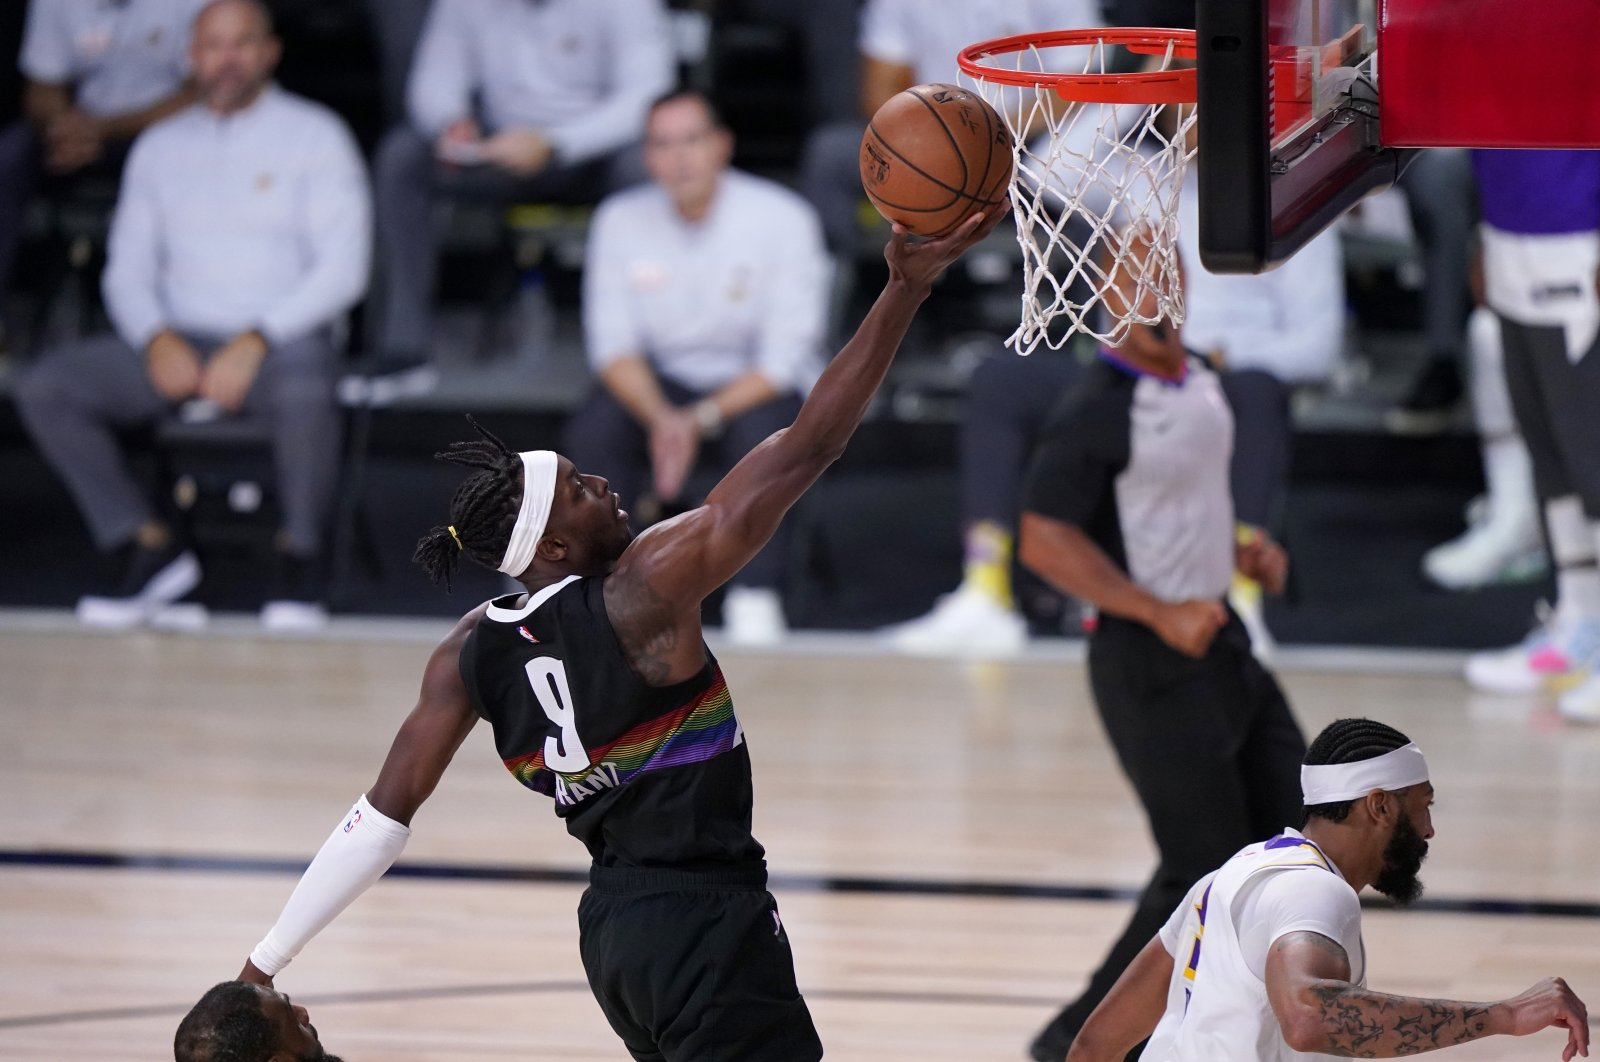 Denver Nuggets forward Jerami Grant (9) goes up for a shot over Los Angeles Lakers' Anthony Davis during the Game 3 of the NBA basketball Western Conference final, in Lake Buena Vista, U.S., Sept. 22, 2020. (AP Photo)